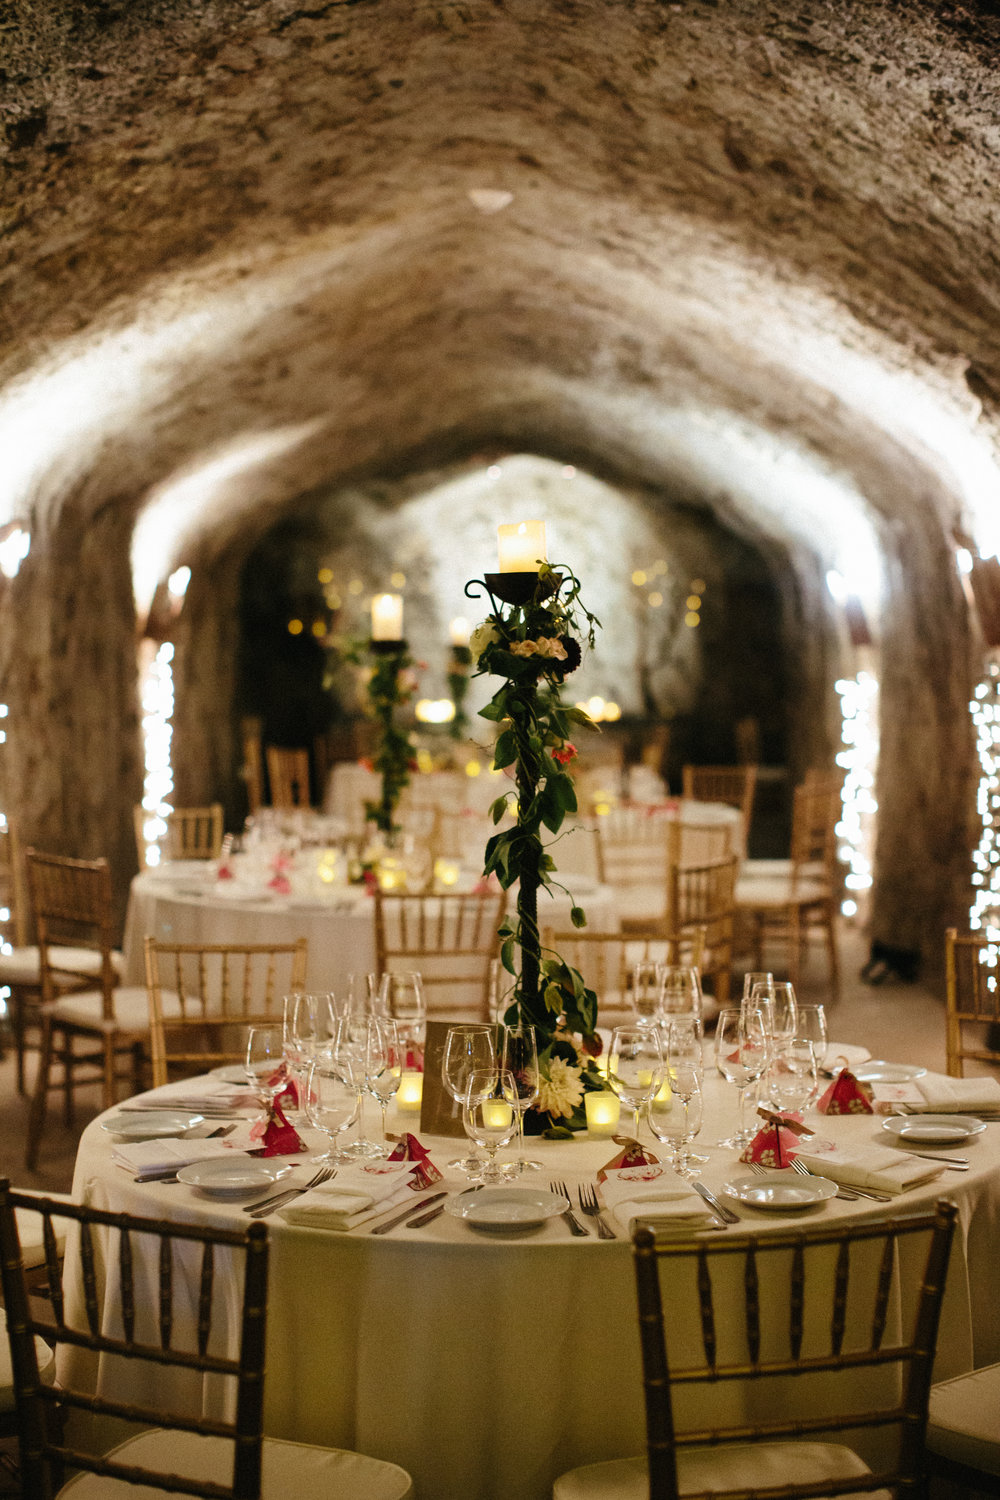 Hans Fahden wine cave reception, candelabras dressed up with green vines and pink passion flowers.